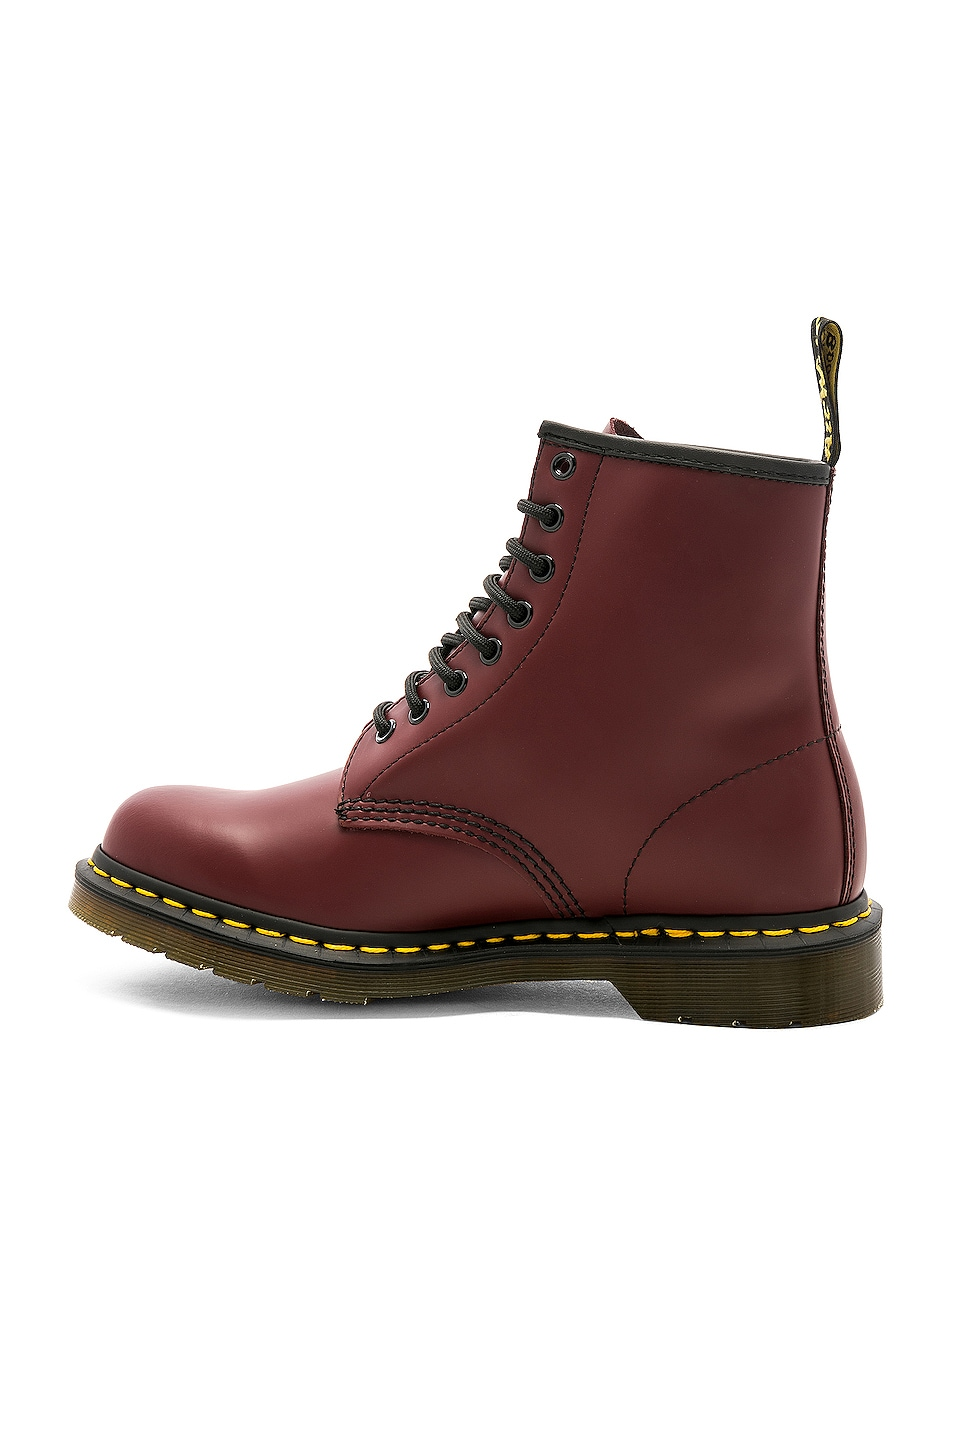 Image 5 of Dr. Martens 1460 8 Eye Boot in Cherry Red